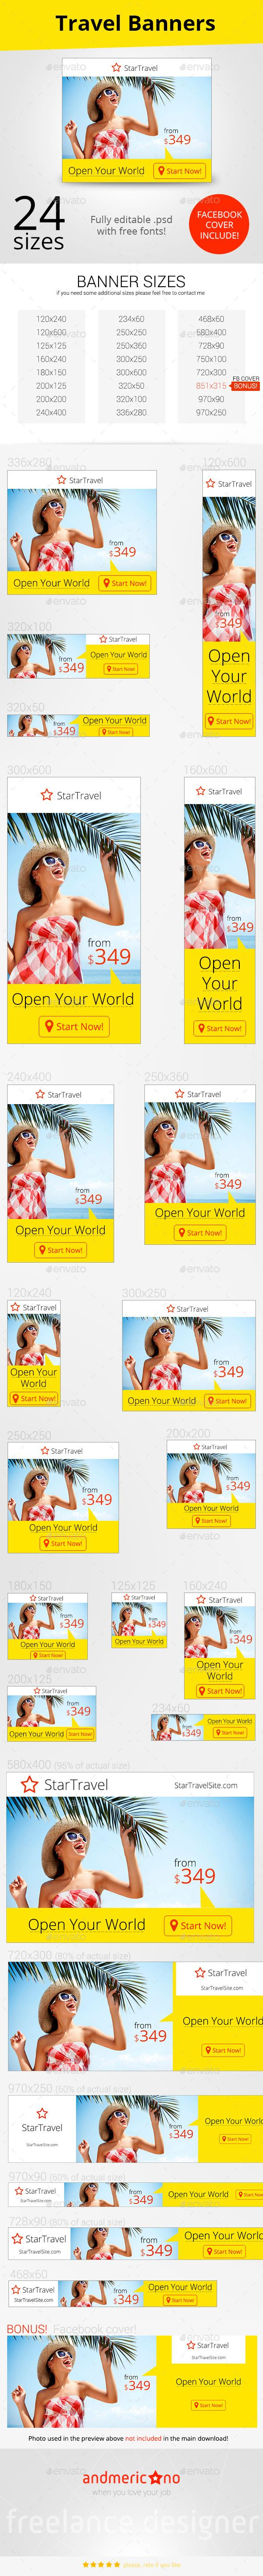 Travel Ad Banners Template PSD | Buy and Download: http://graphicriver.net/item/travel-ad-banners/9998128?ref=ksioks